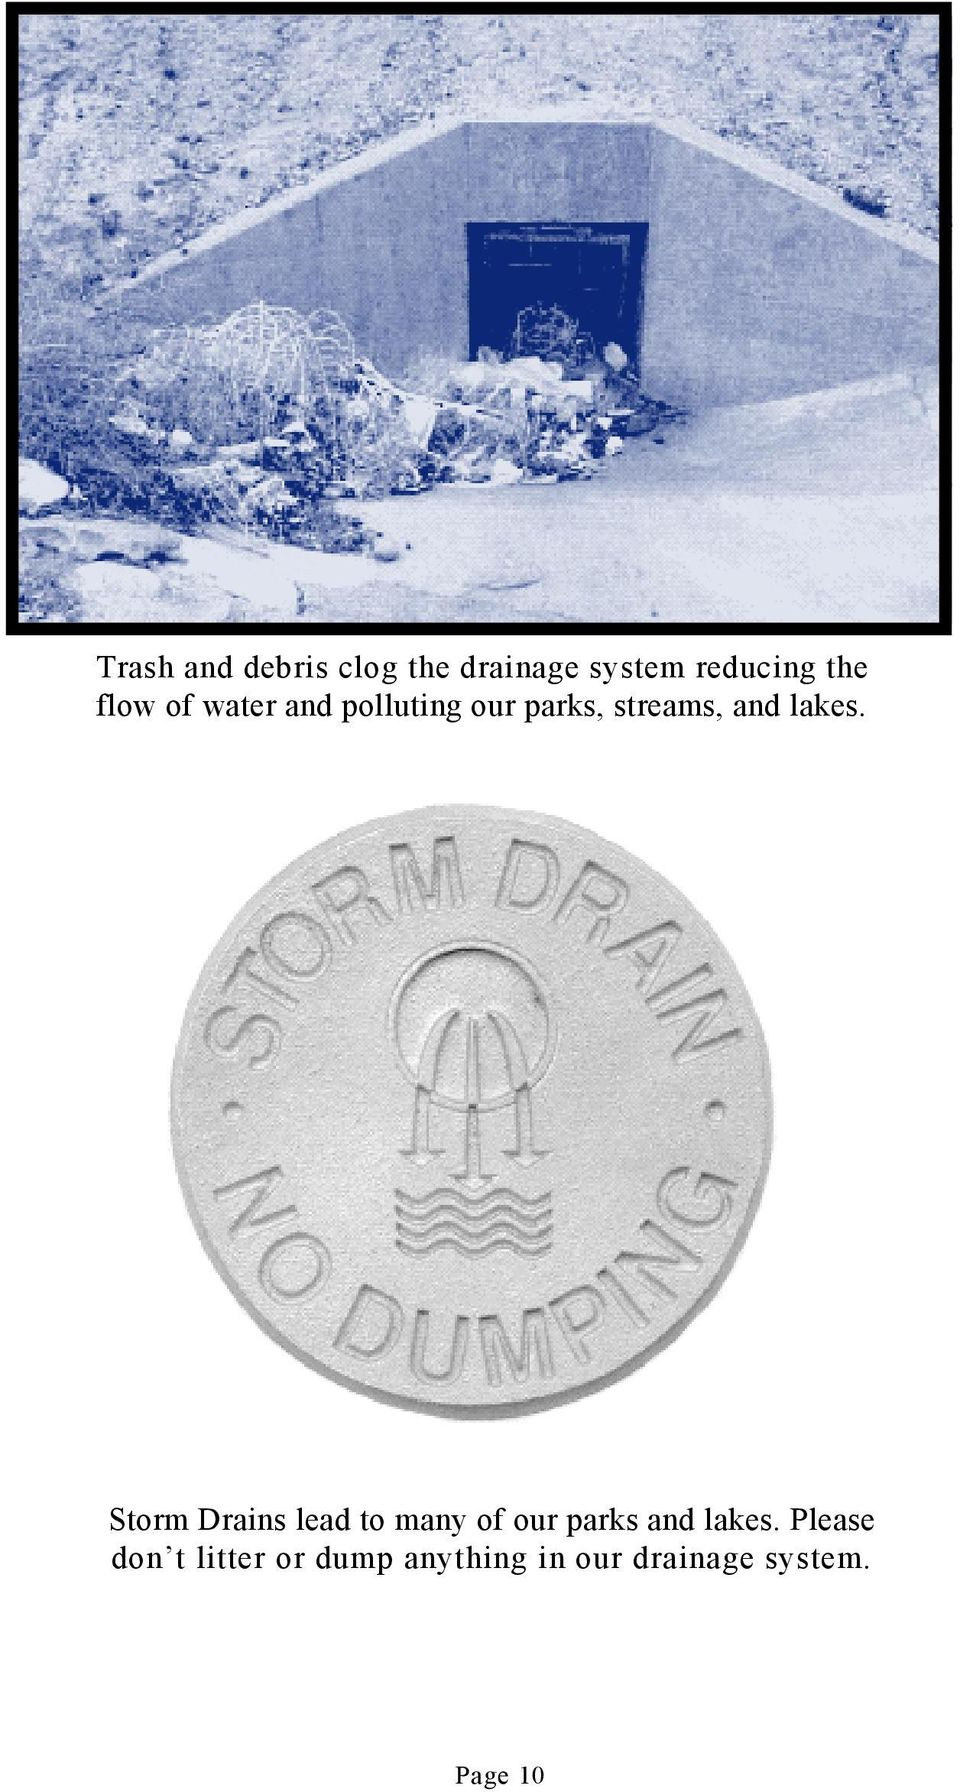 Storm Drains lead to many of our parks and lakes.